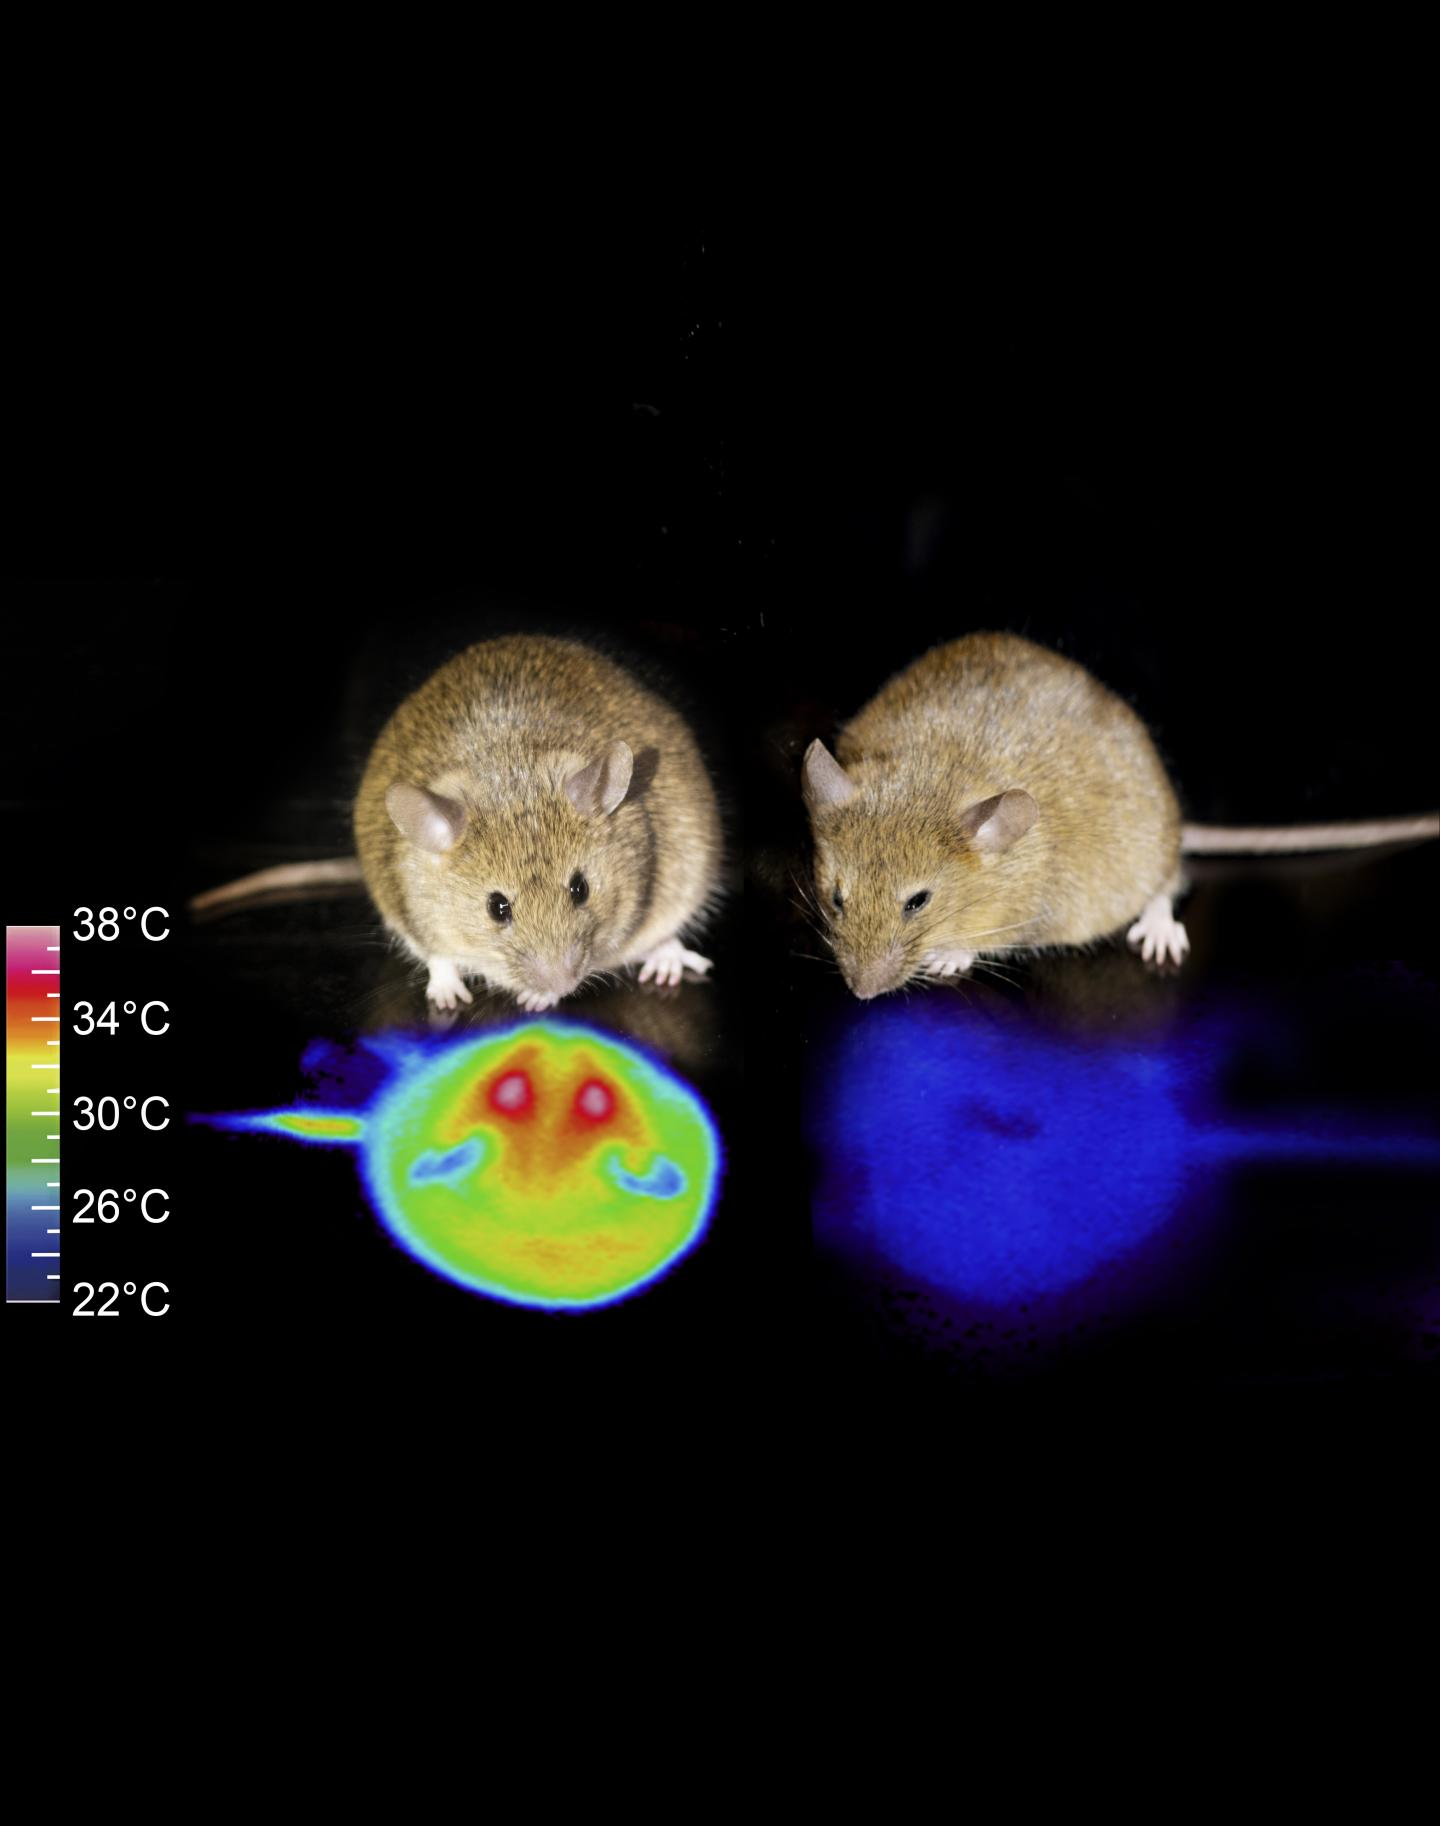 Hibernation in Mice: Are Humans Next?